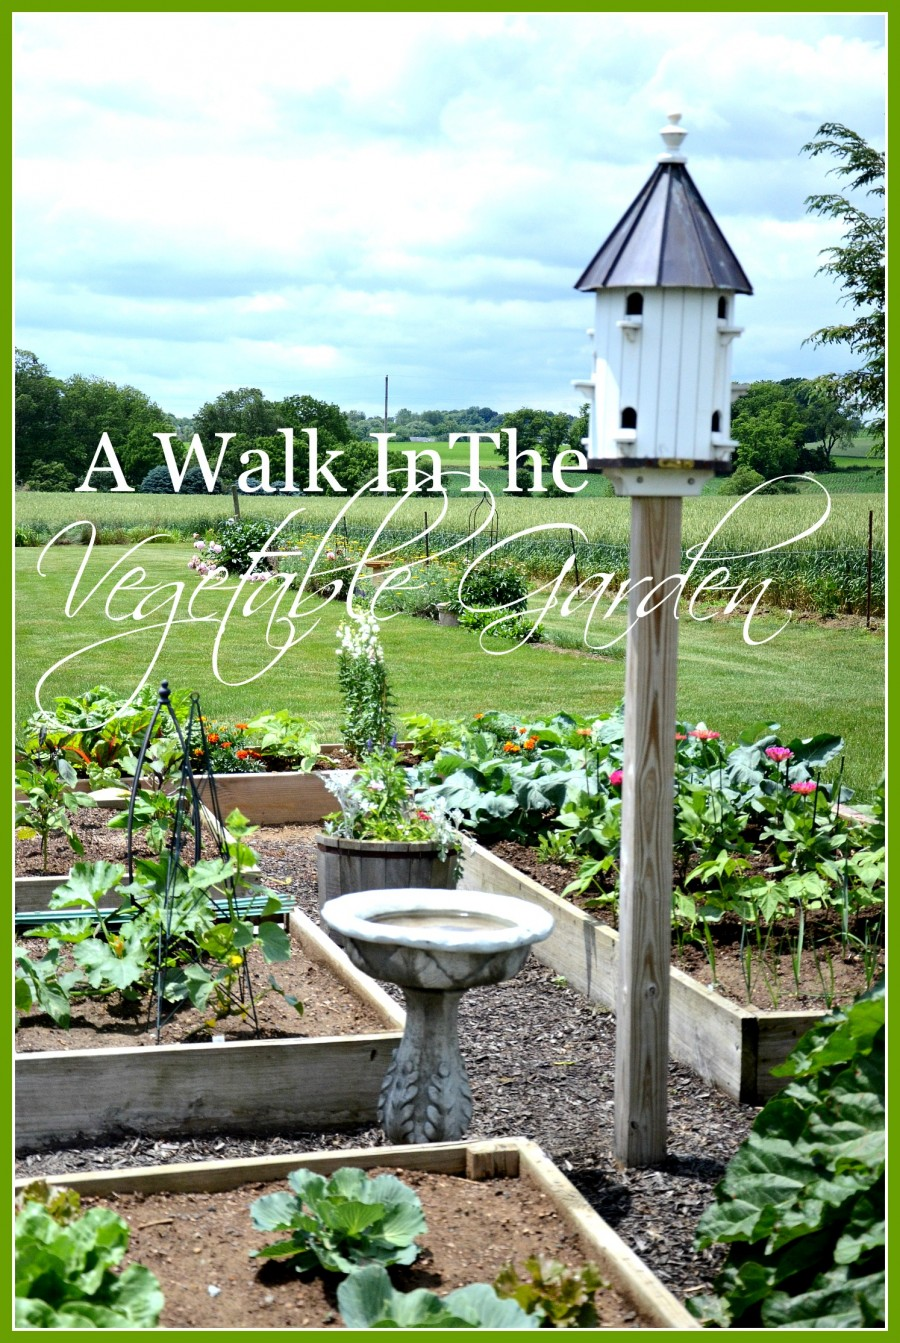 Over The Garden Walk: A WALK IN THE VEGETABLE GARDEN